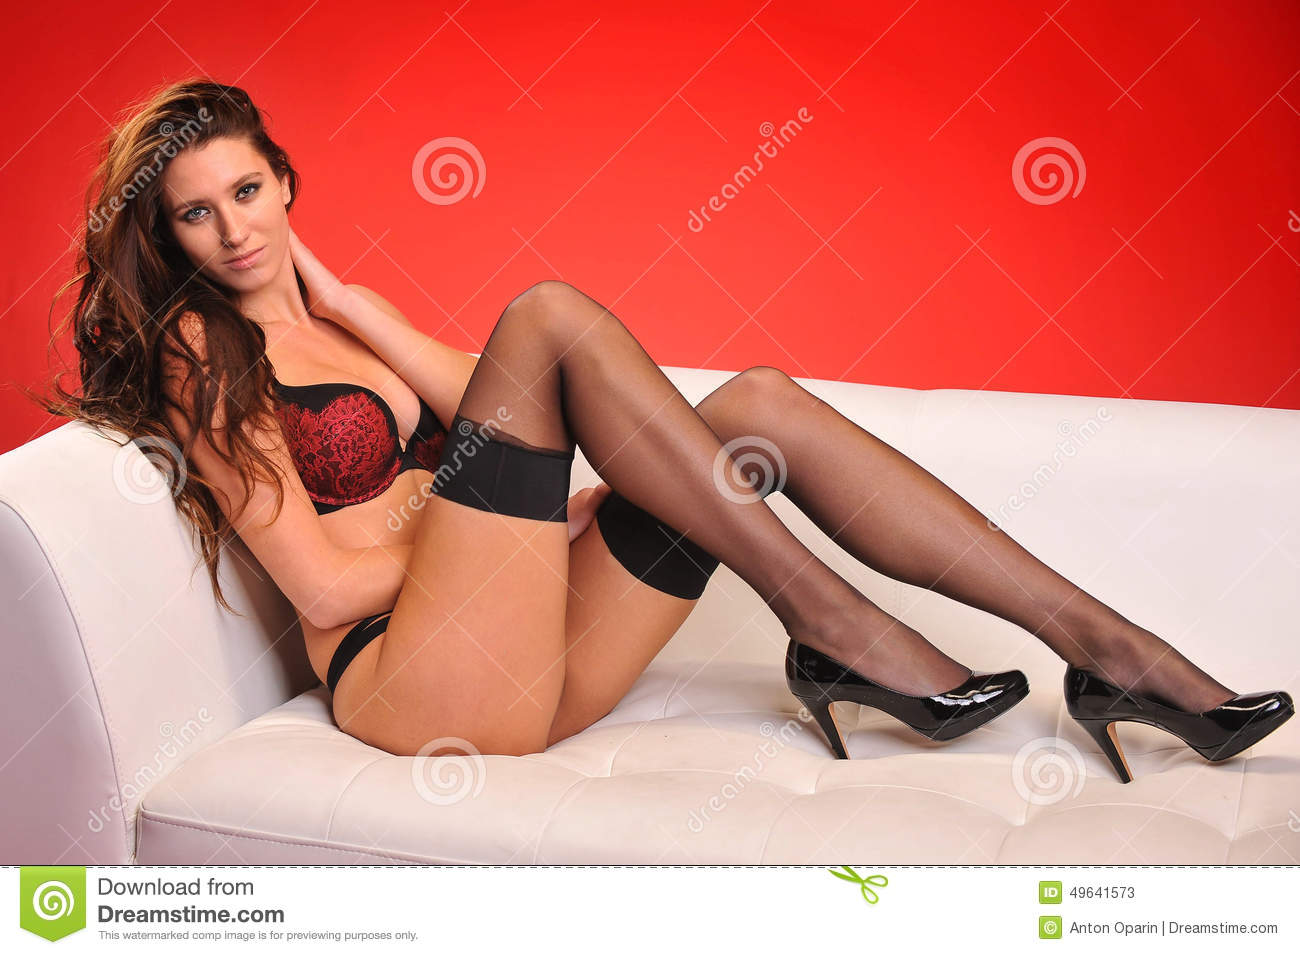 Attractive young woman wearing lingerie posing on the sofa